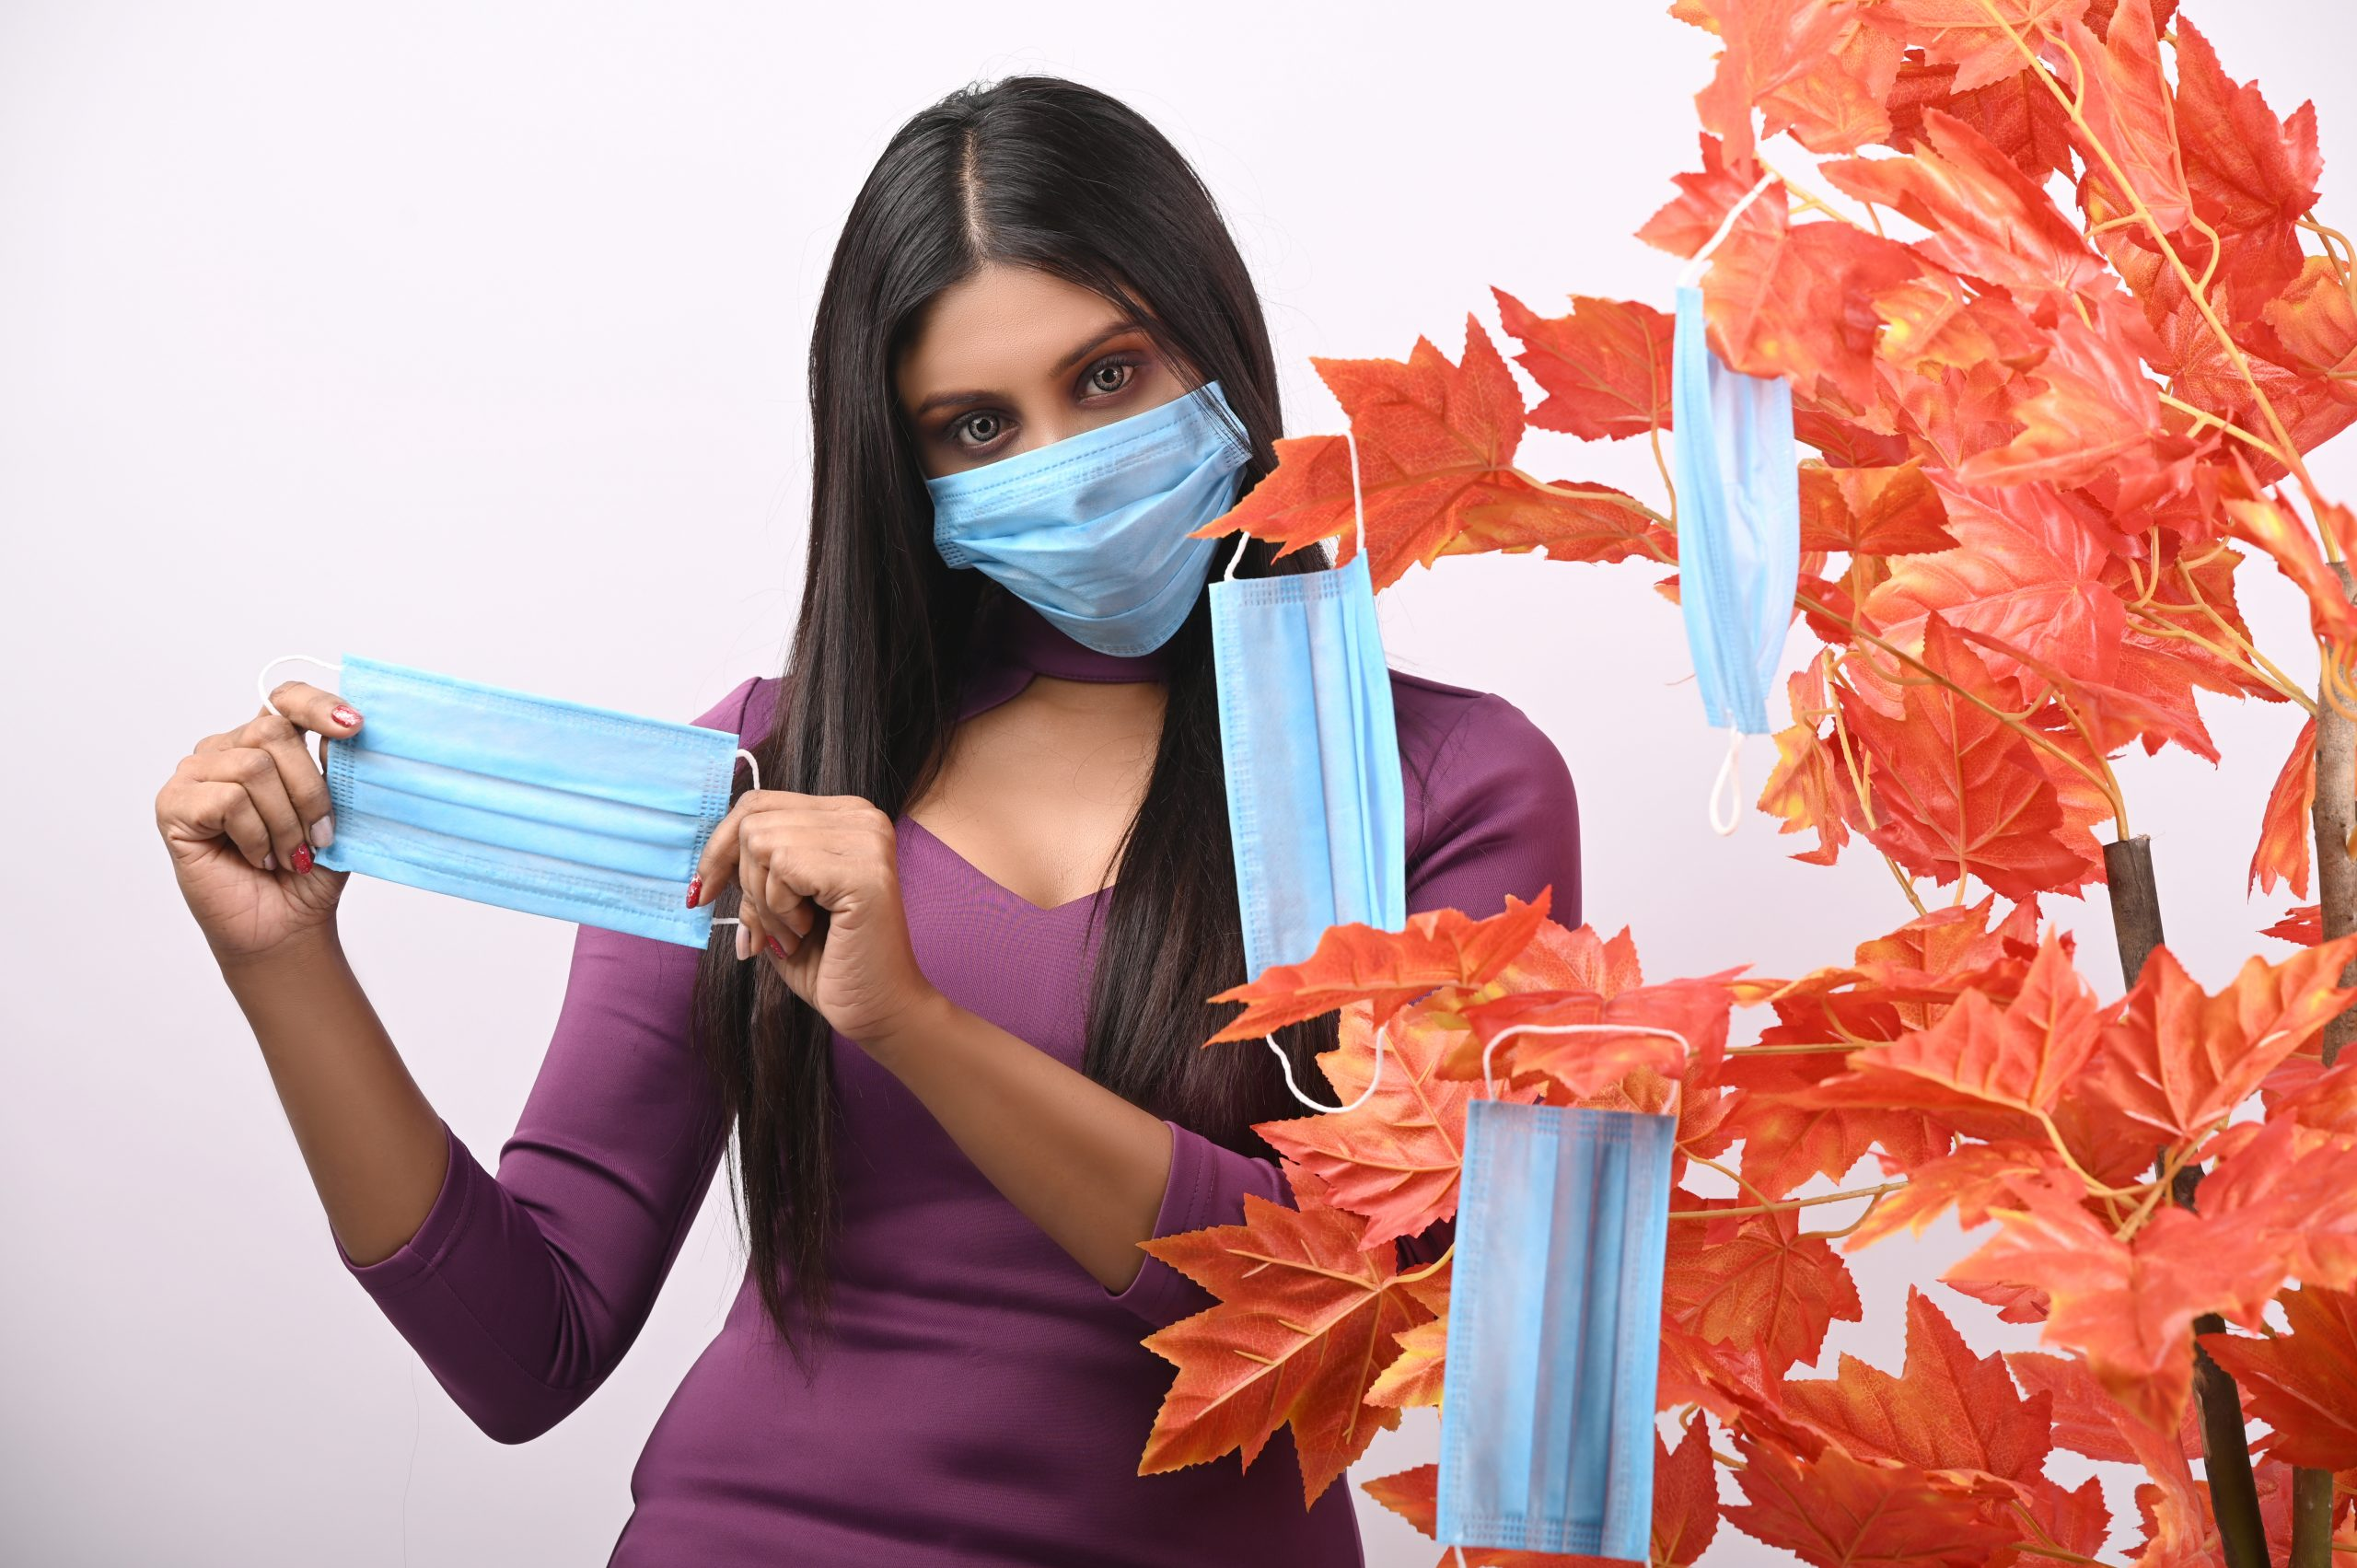 Model posing with mask